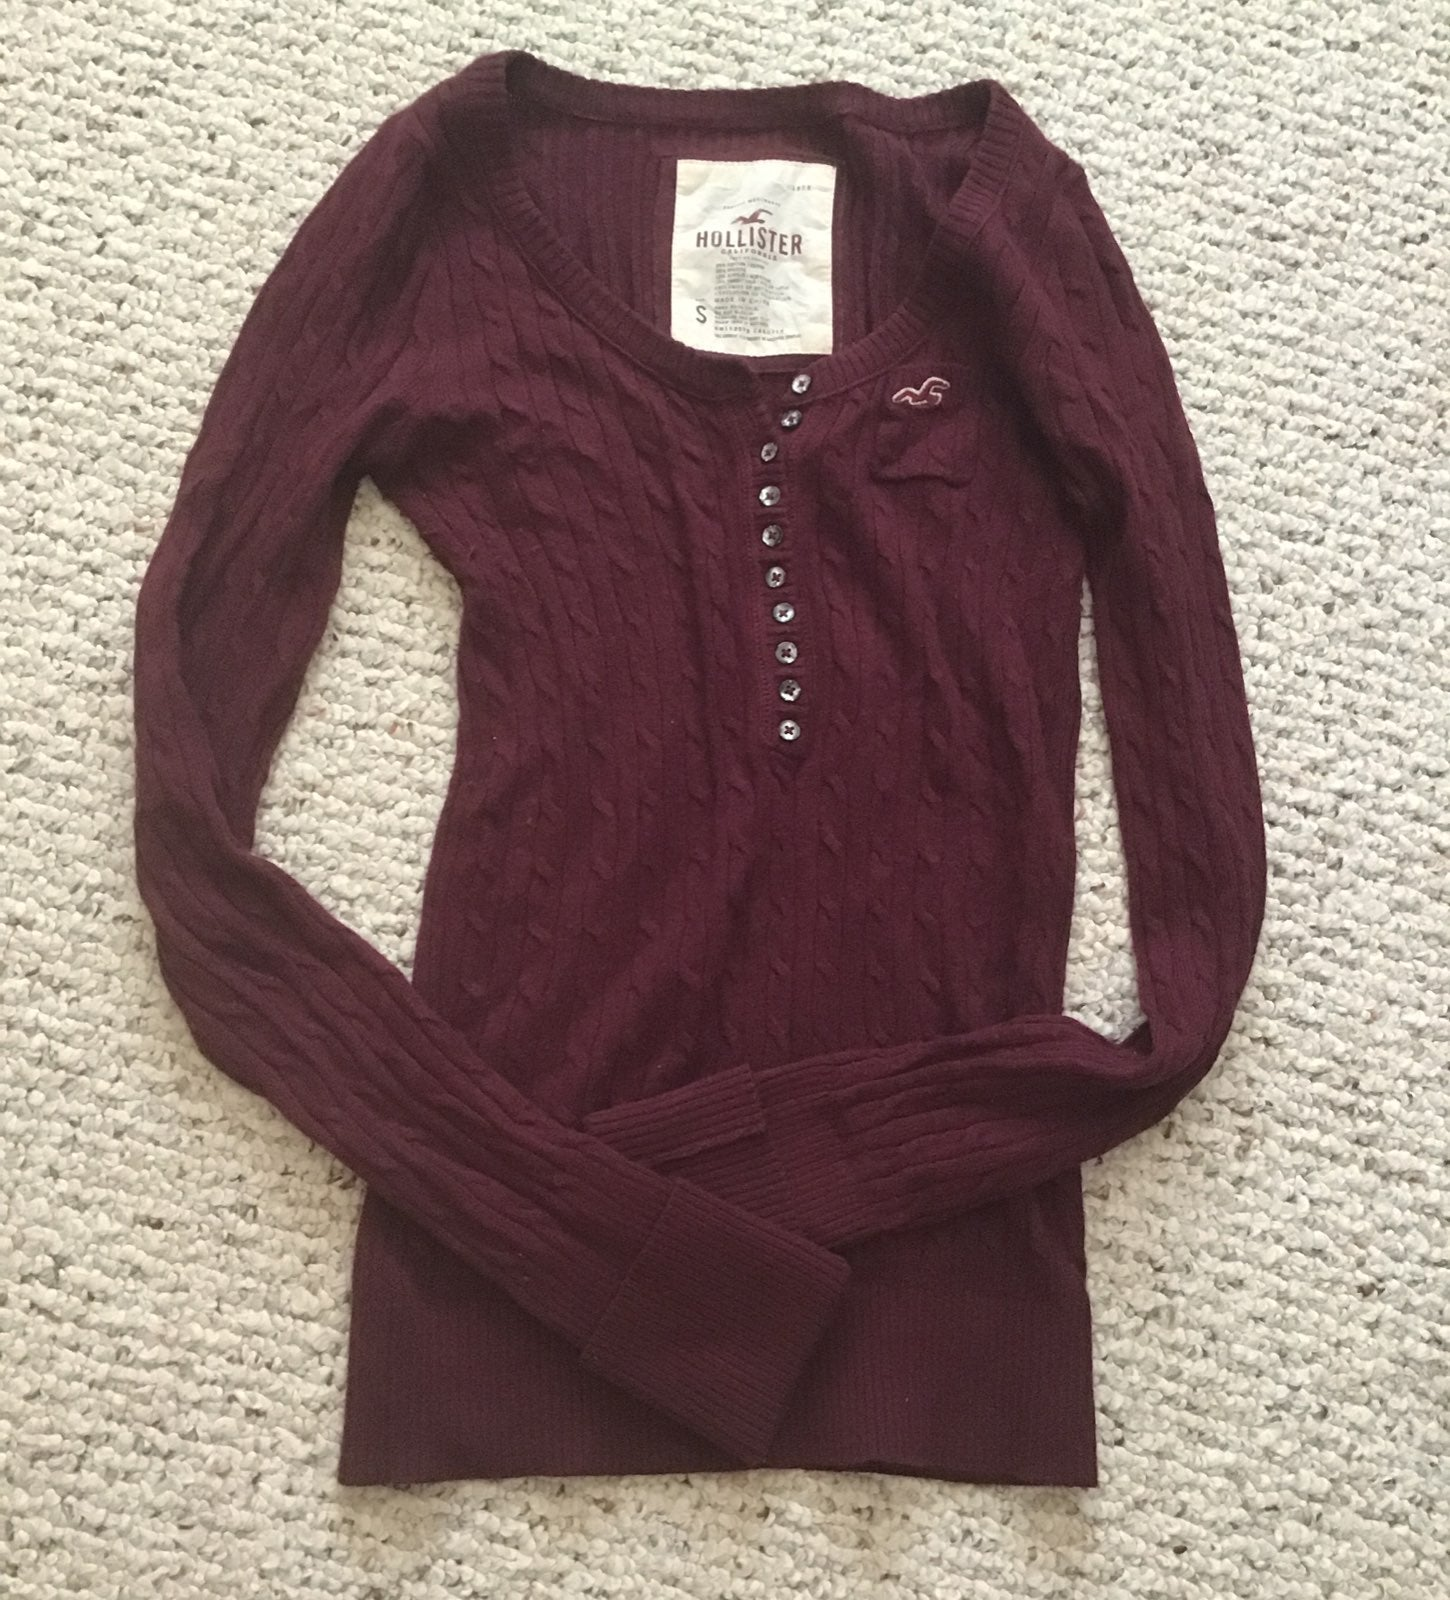 Hollister maroon sweater